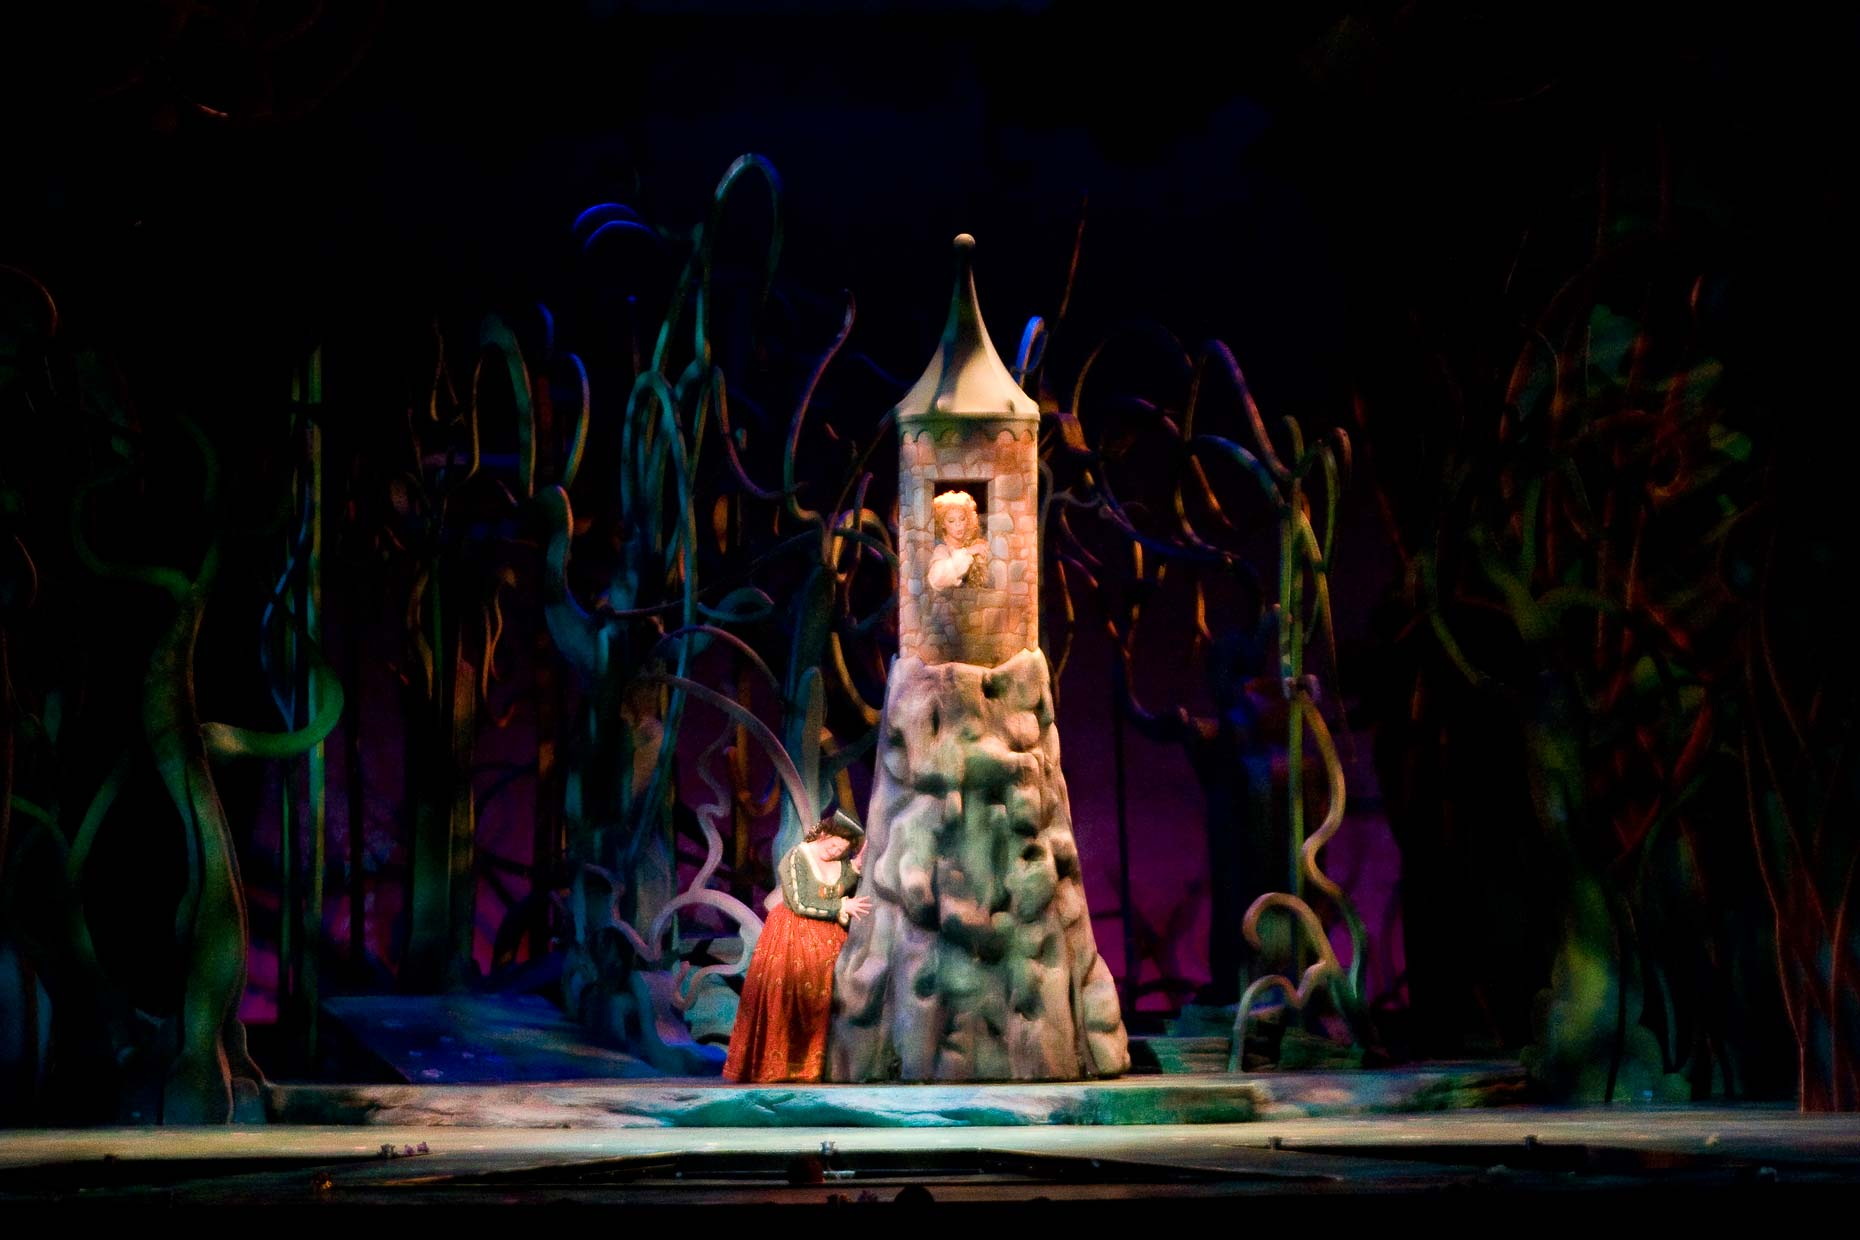 INTO THE WOODS Rapunzel #SetDesign #ScenicDesign #LiveEntertainment #LiveDesign #MusicalDesign